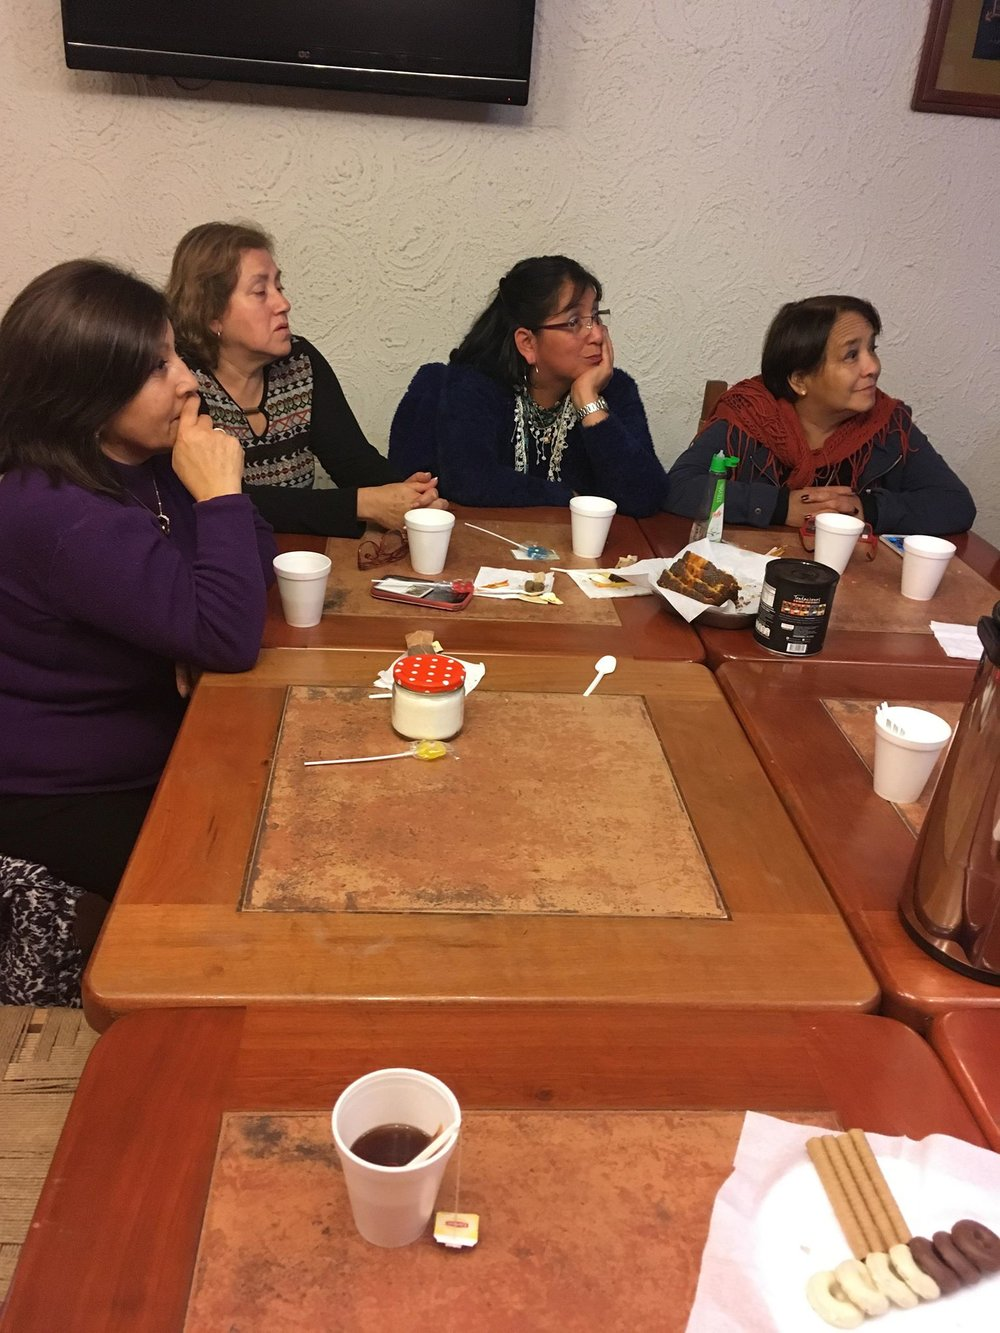 Meeting with ladies from church.